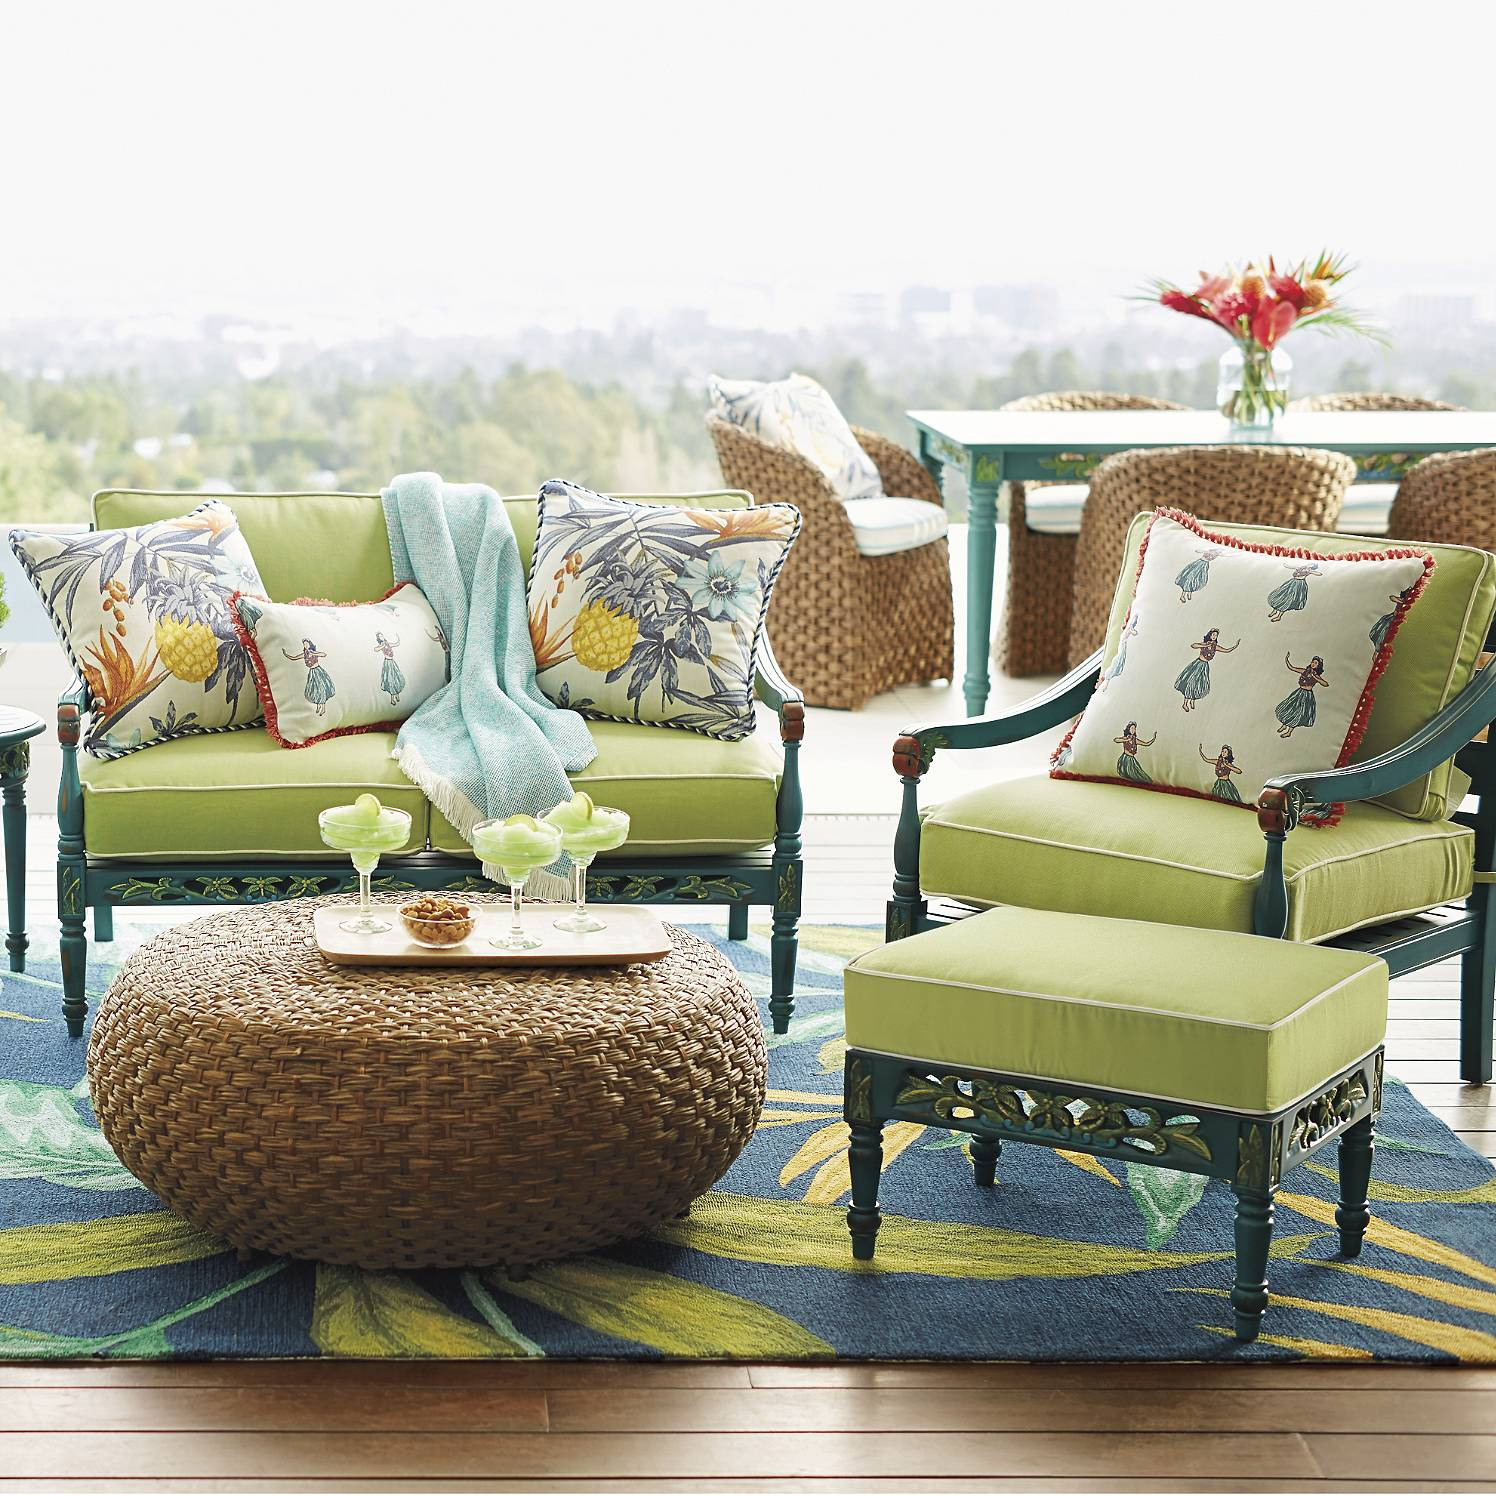 Margaritaville St Barts Seating Furniture Collection